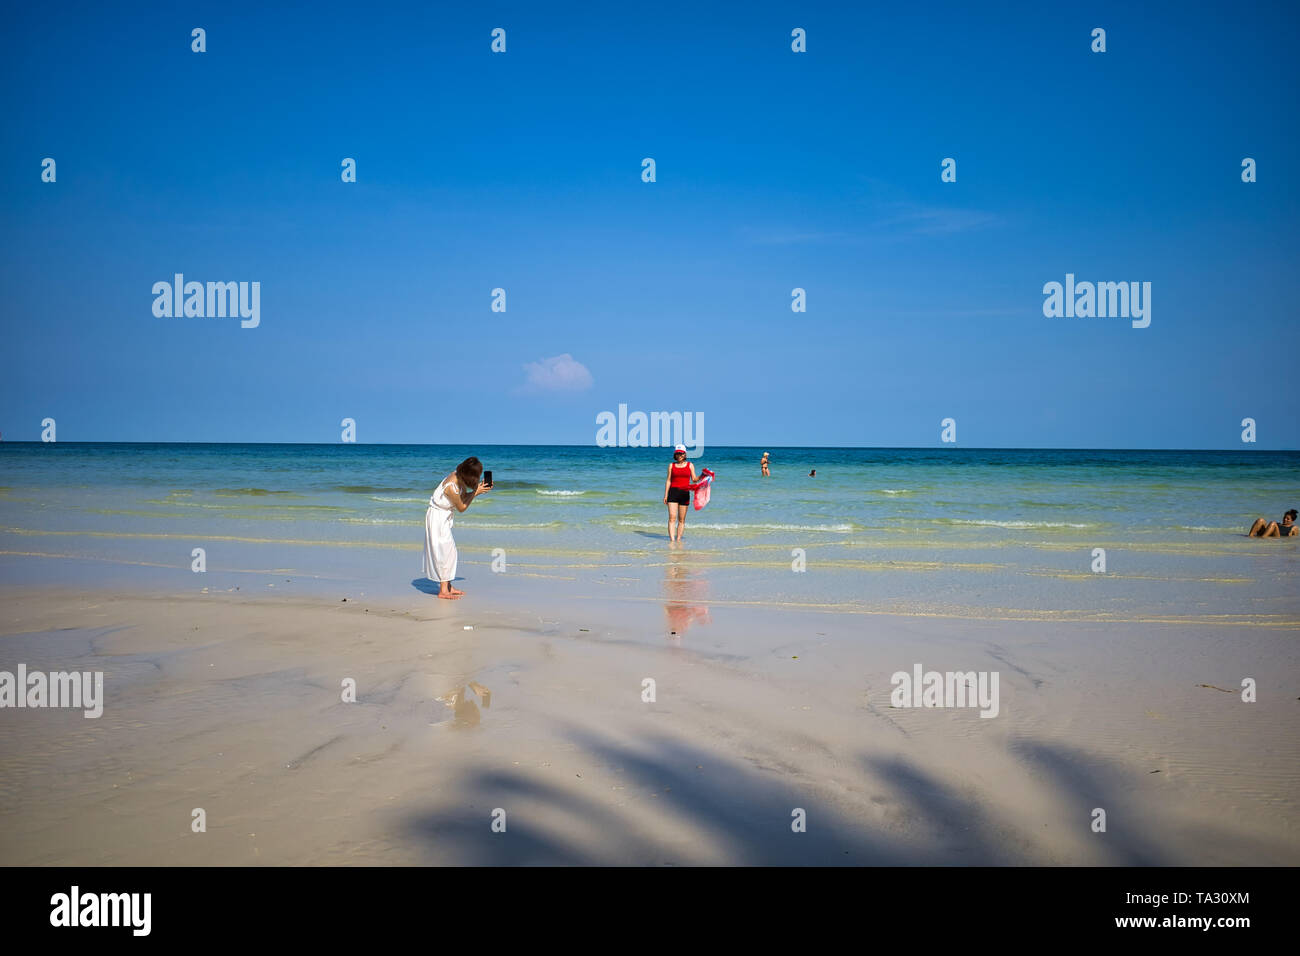 Phu Quoc island, Vietnam - March 31, 2019: White sand beach, sea horizon. Calm sea and girls on the beach are photographed. Coast of the South China S - Stock Image